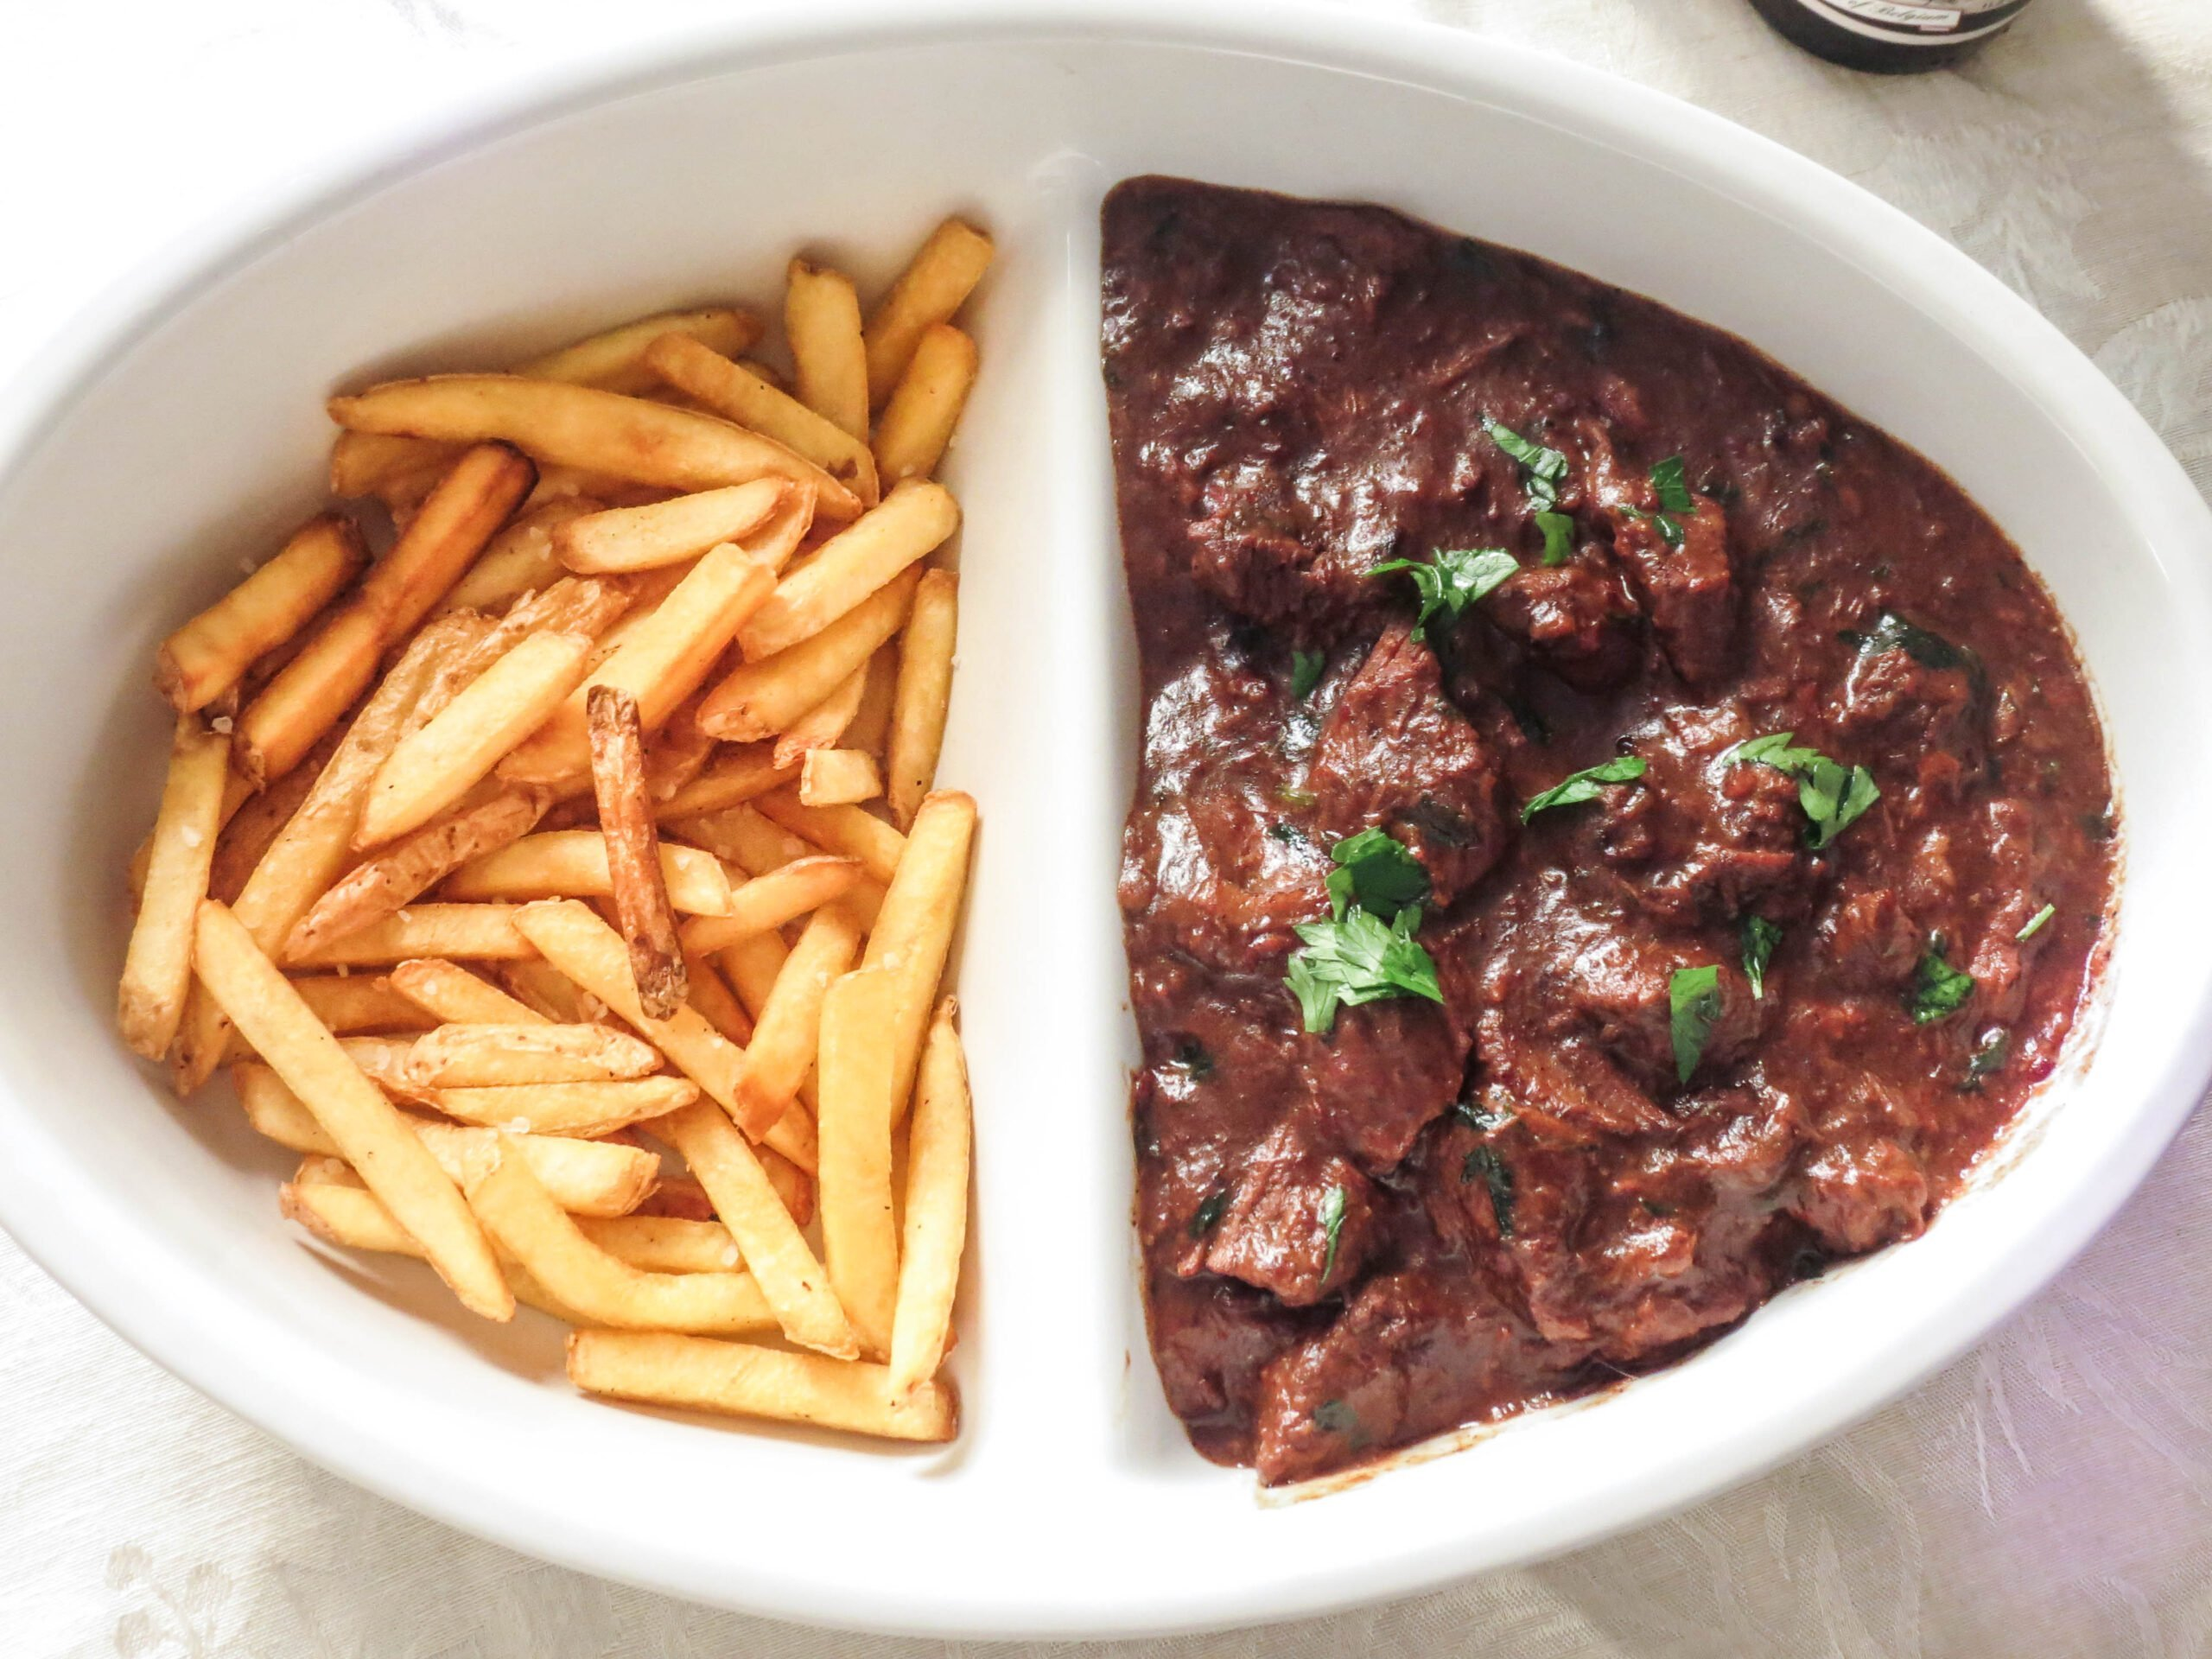 The World Cup Series – Belgium: Carbonnade Flamande (Beef and Beer Stew)